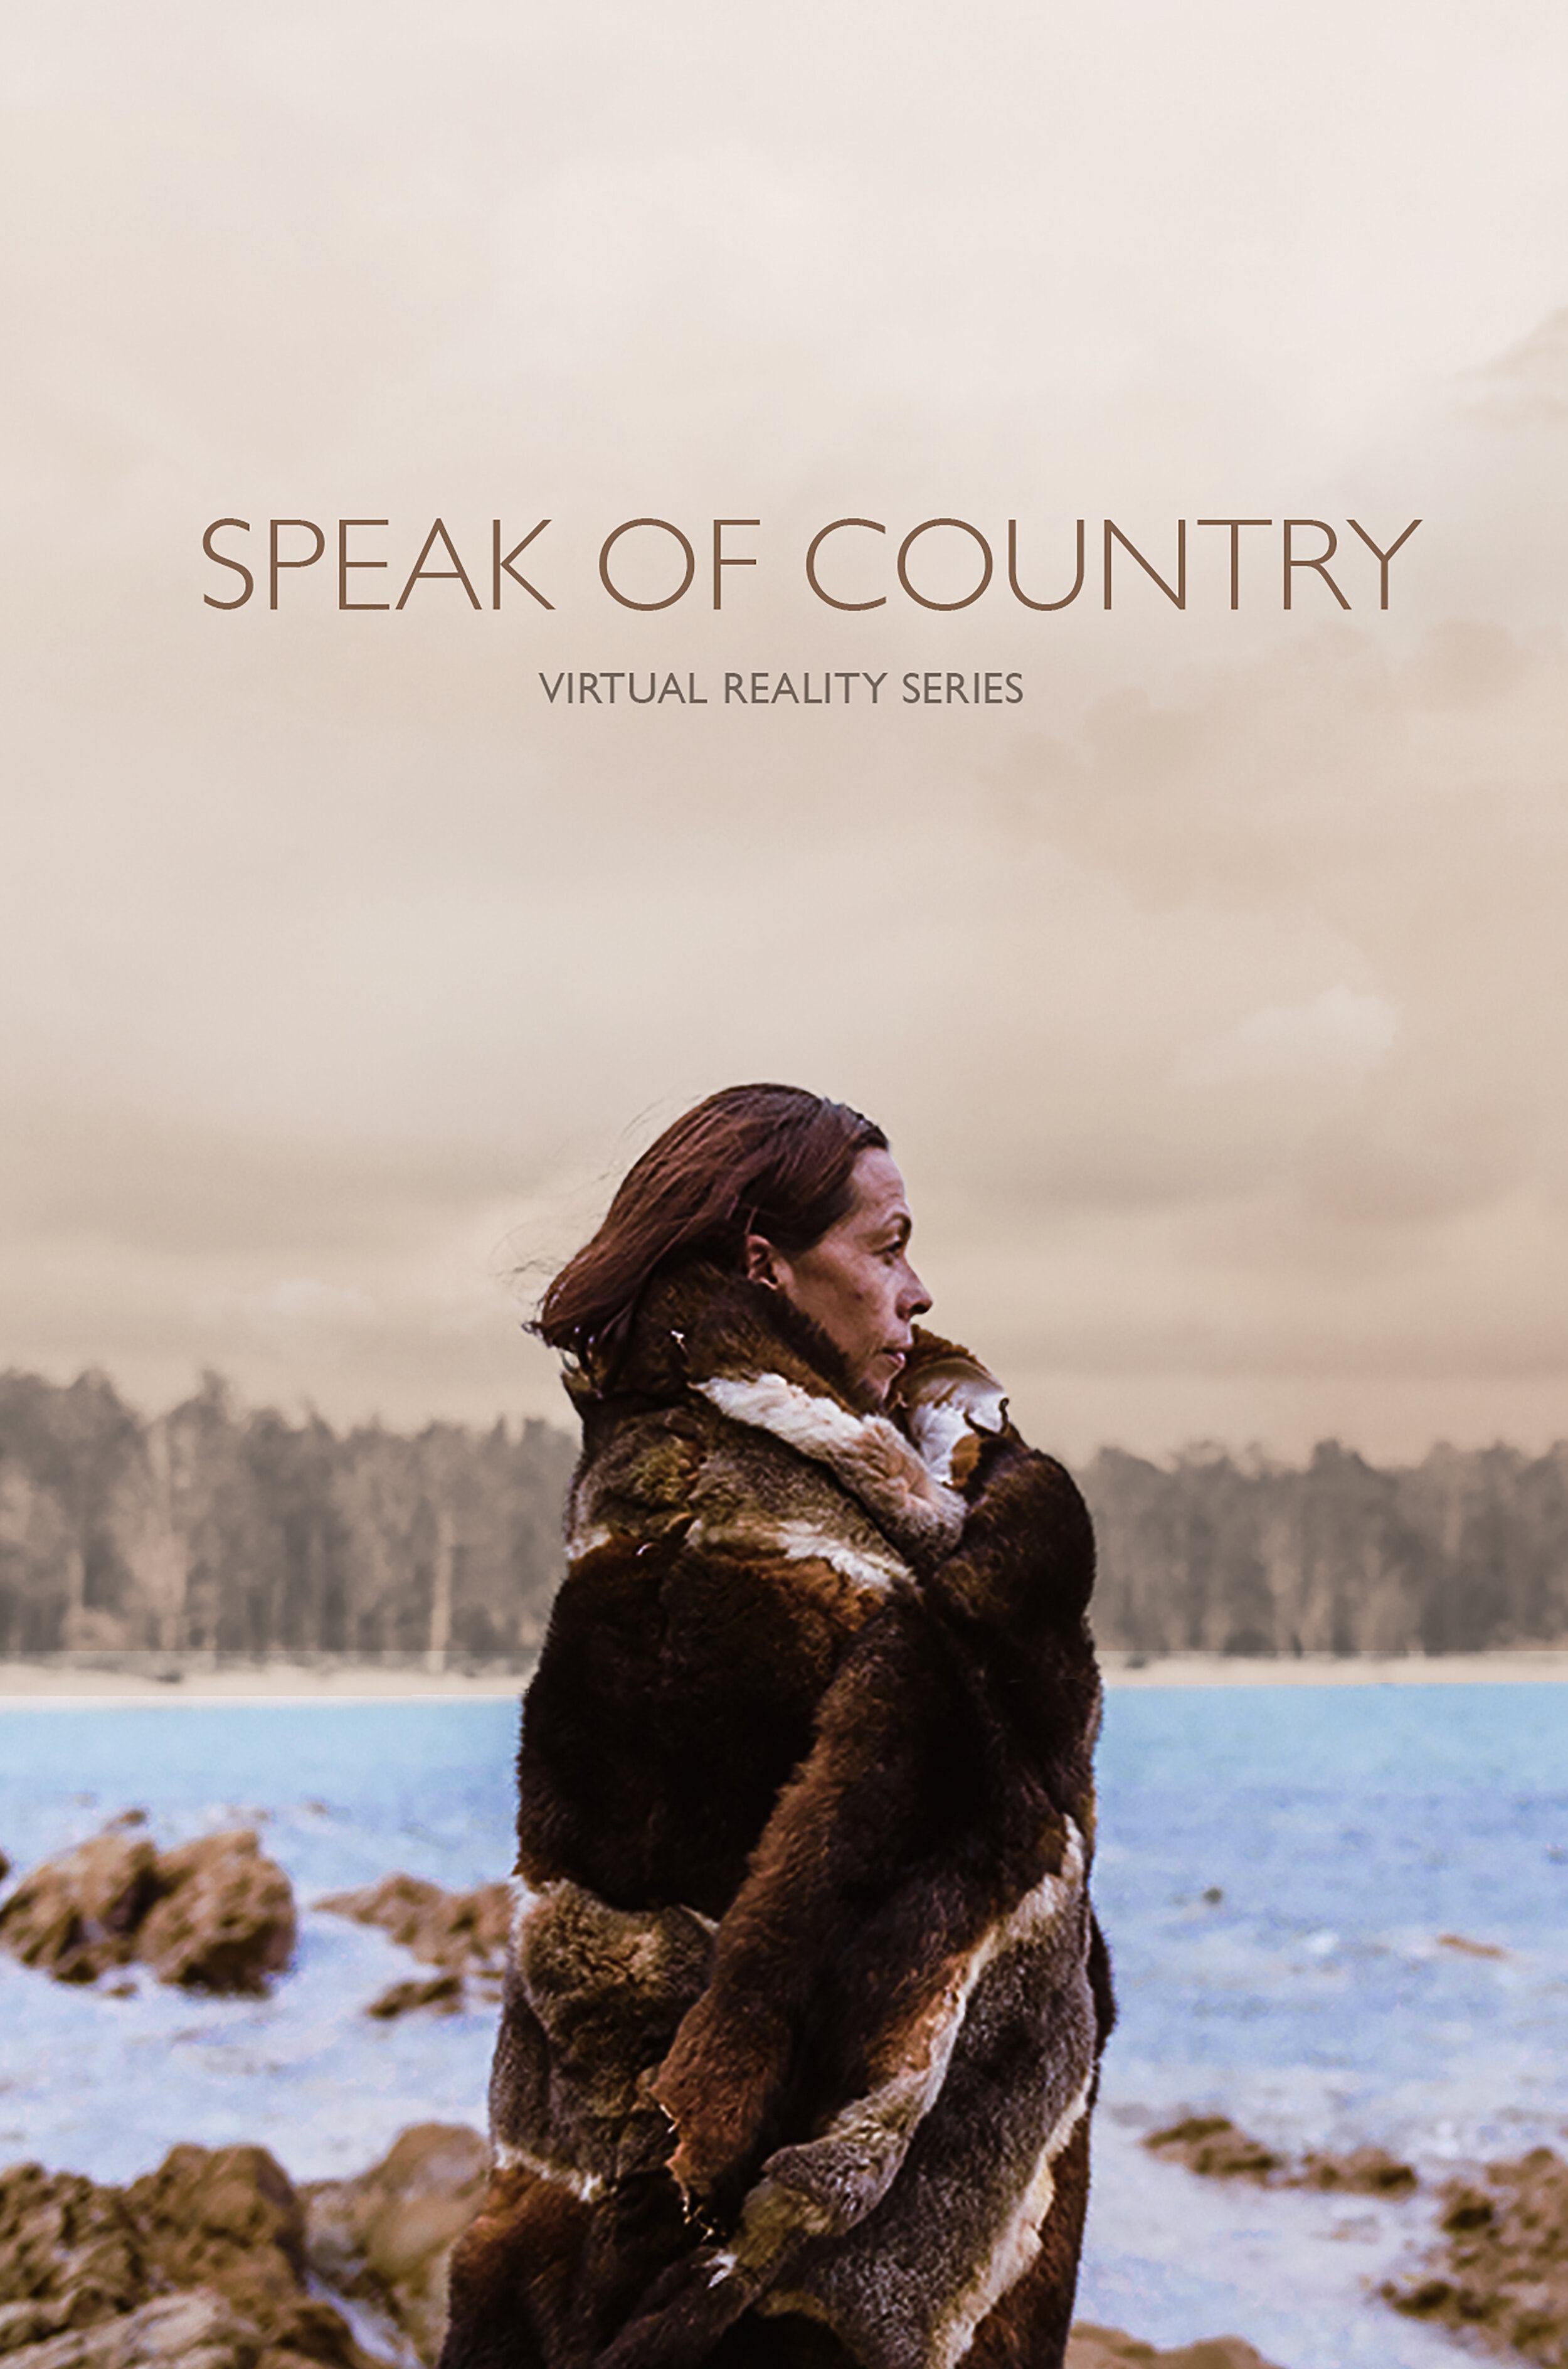 Speak of Country(with VR)_high res copy.jpg